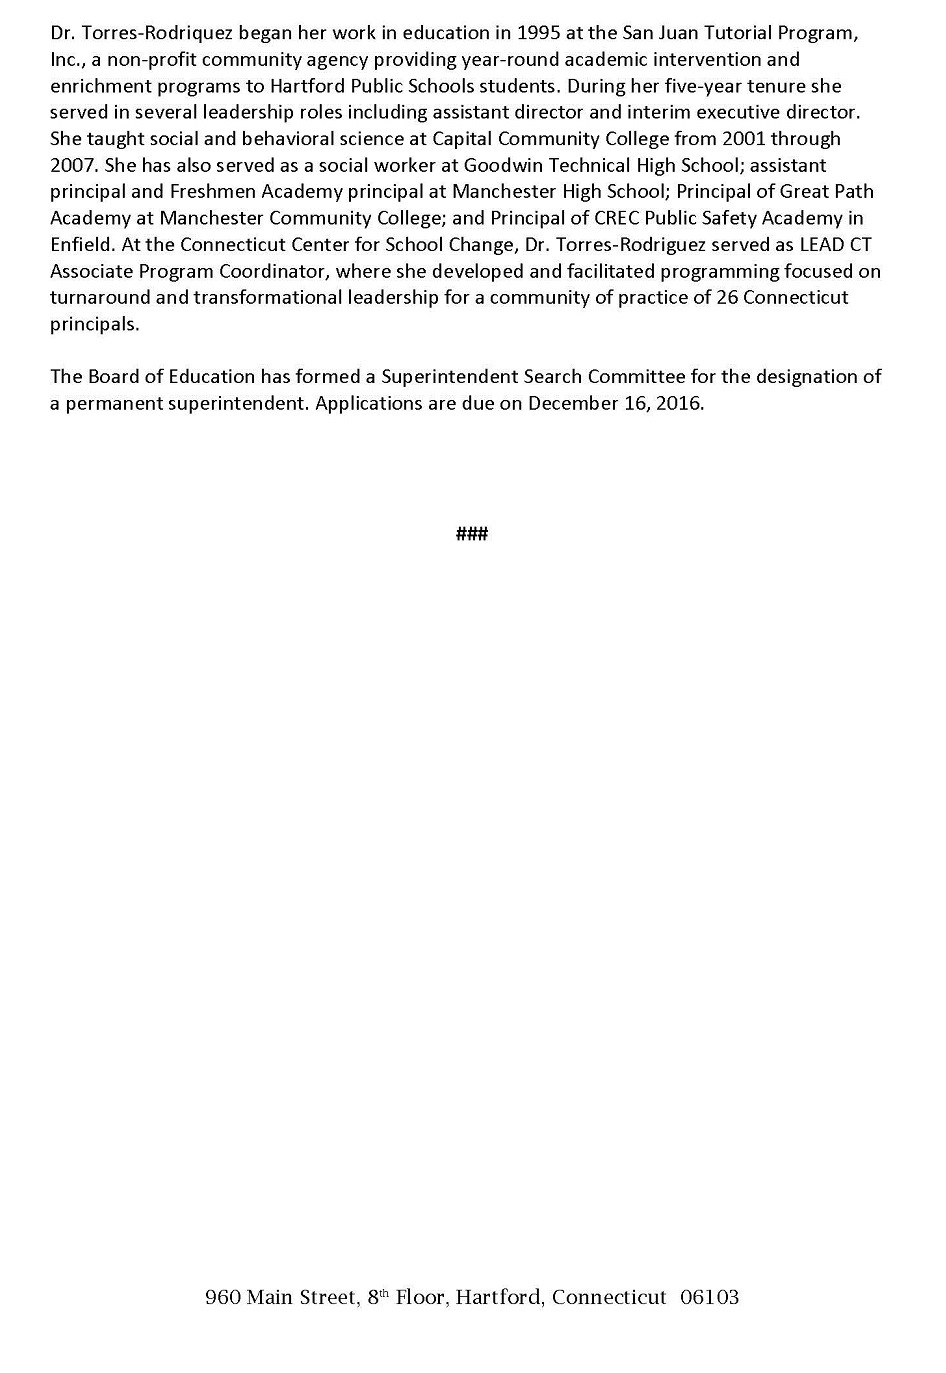 pressrelease-acting-superintendent_12062016_page_2